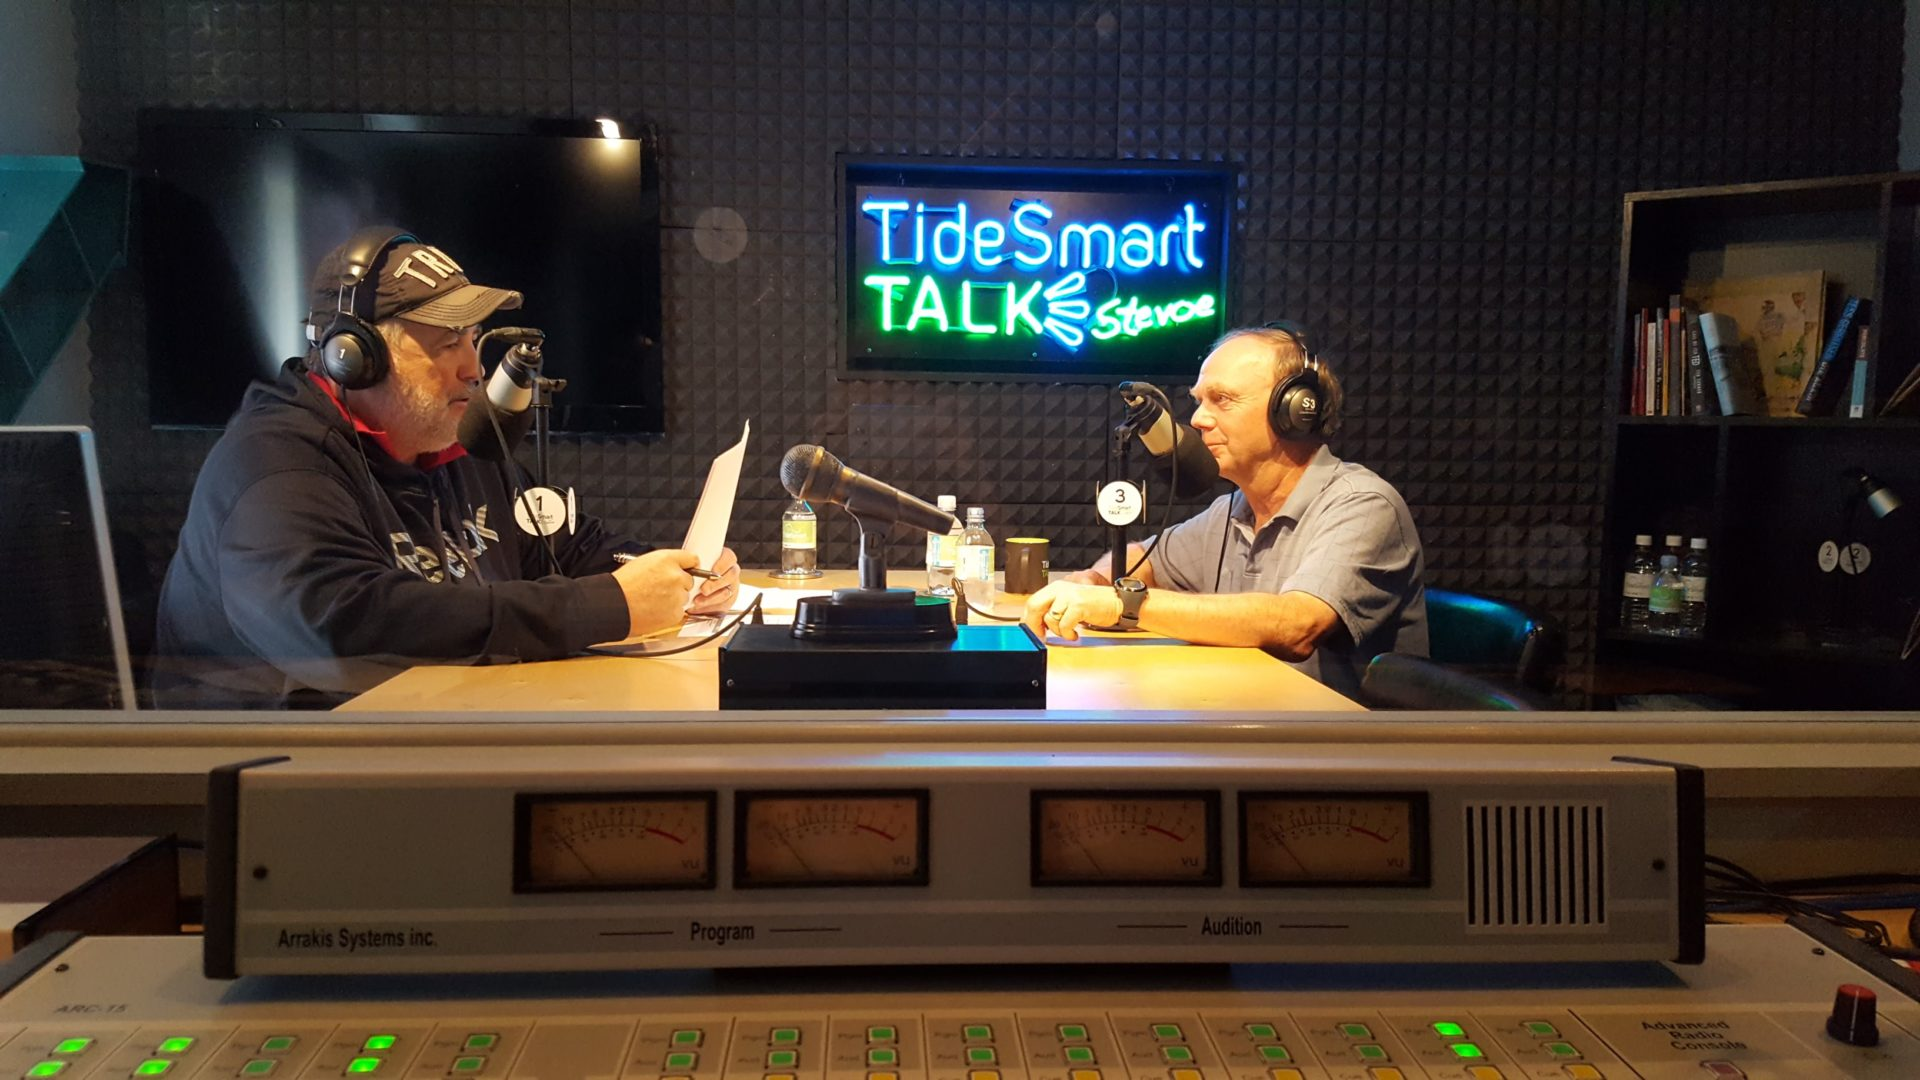 Host of TideSmart Talk with Stevoe, Steve Woods, welcomed President of Envision Maine, Alan Caron (at right).